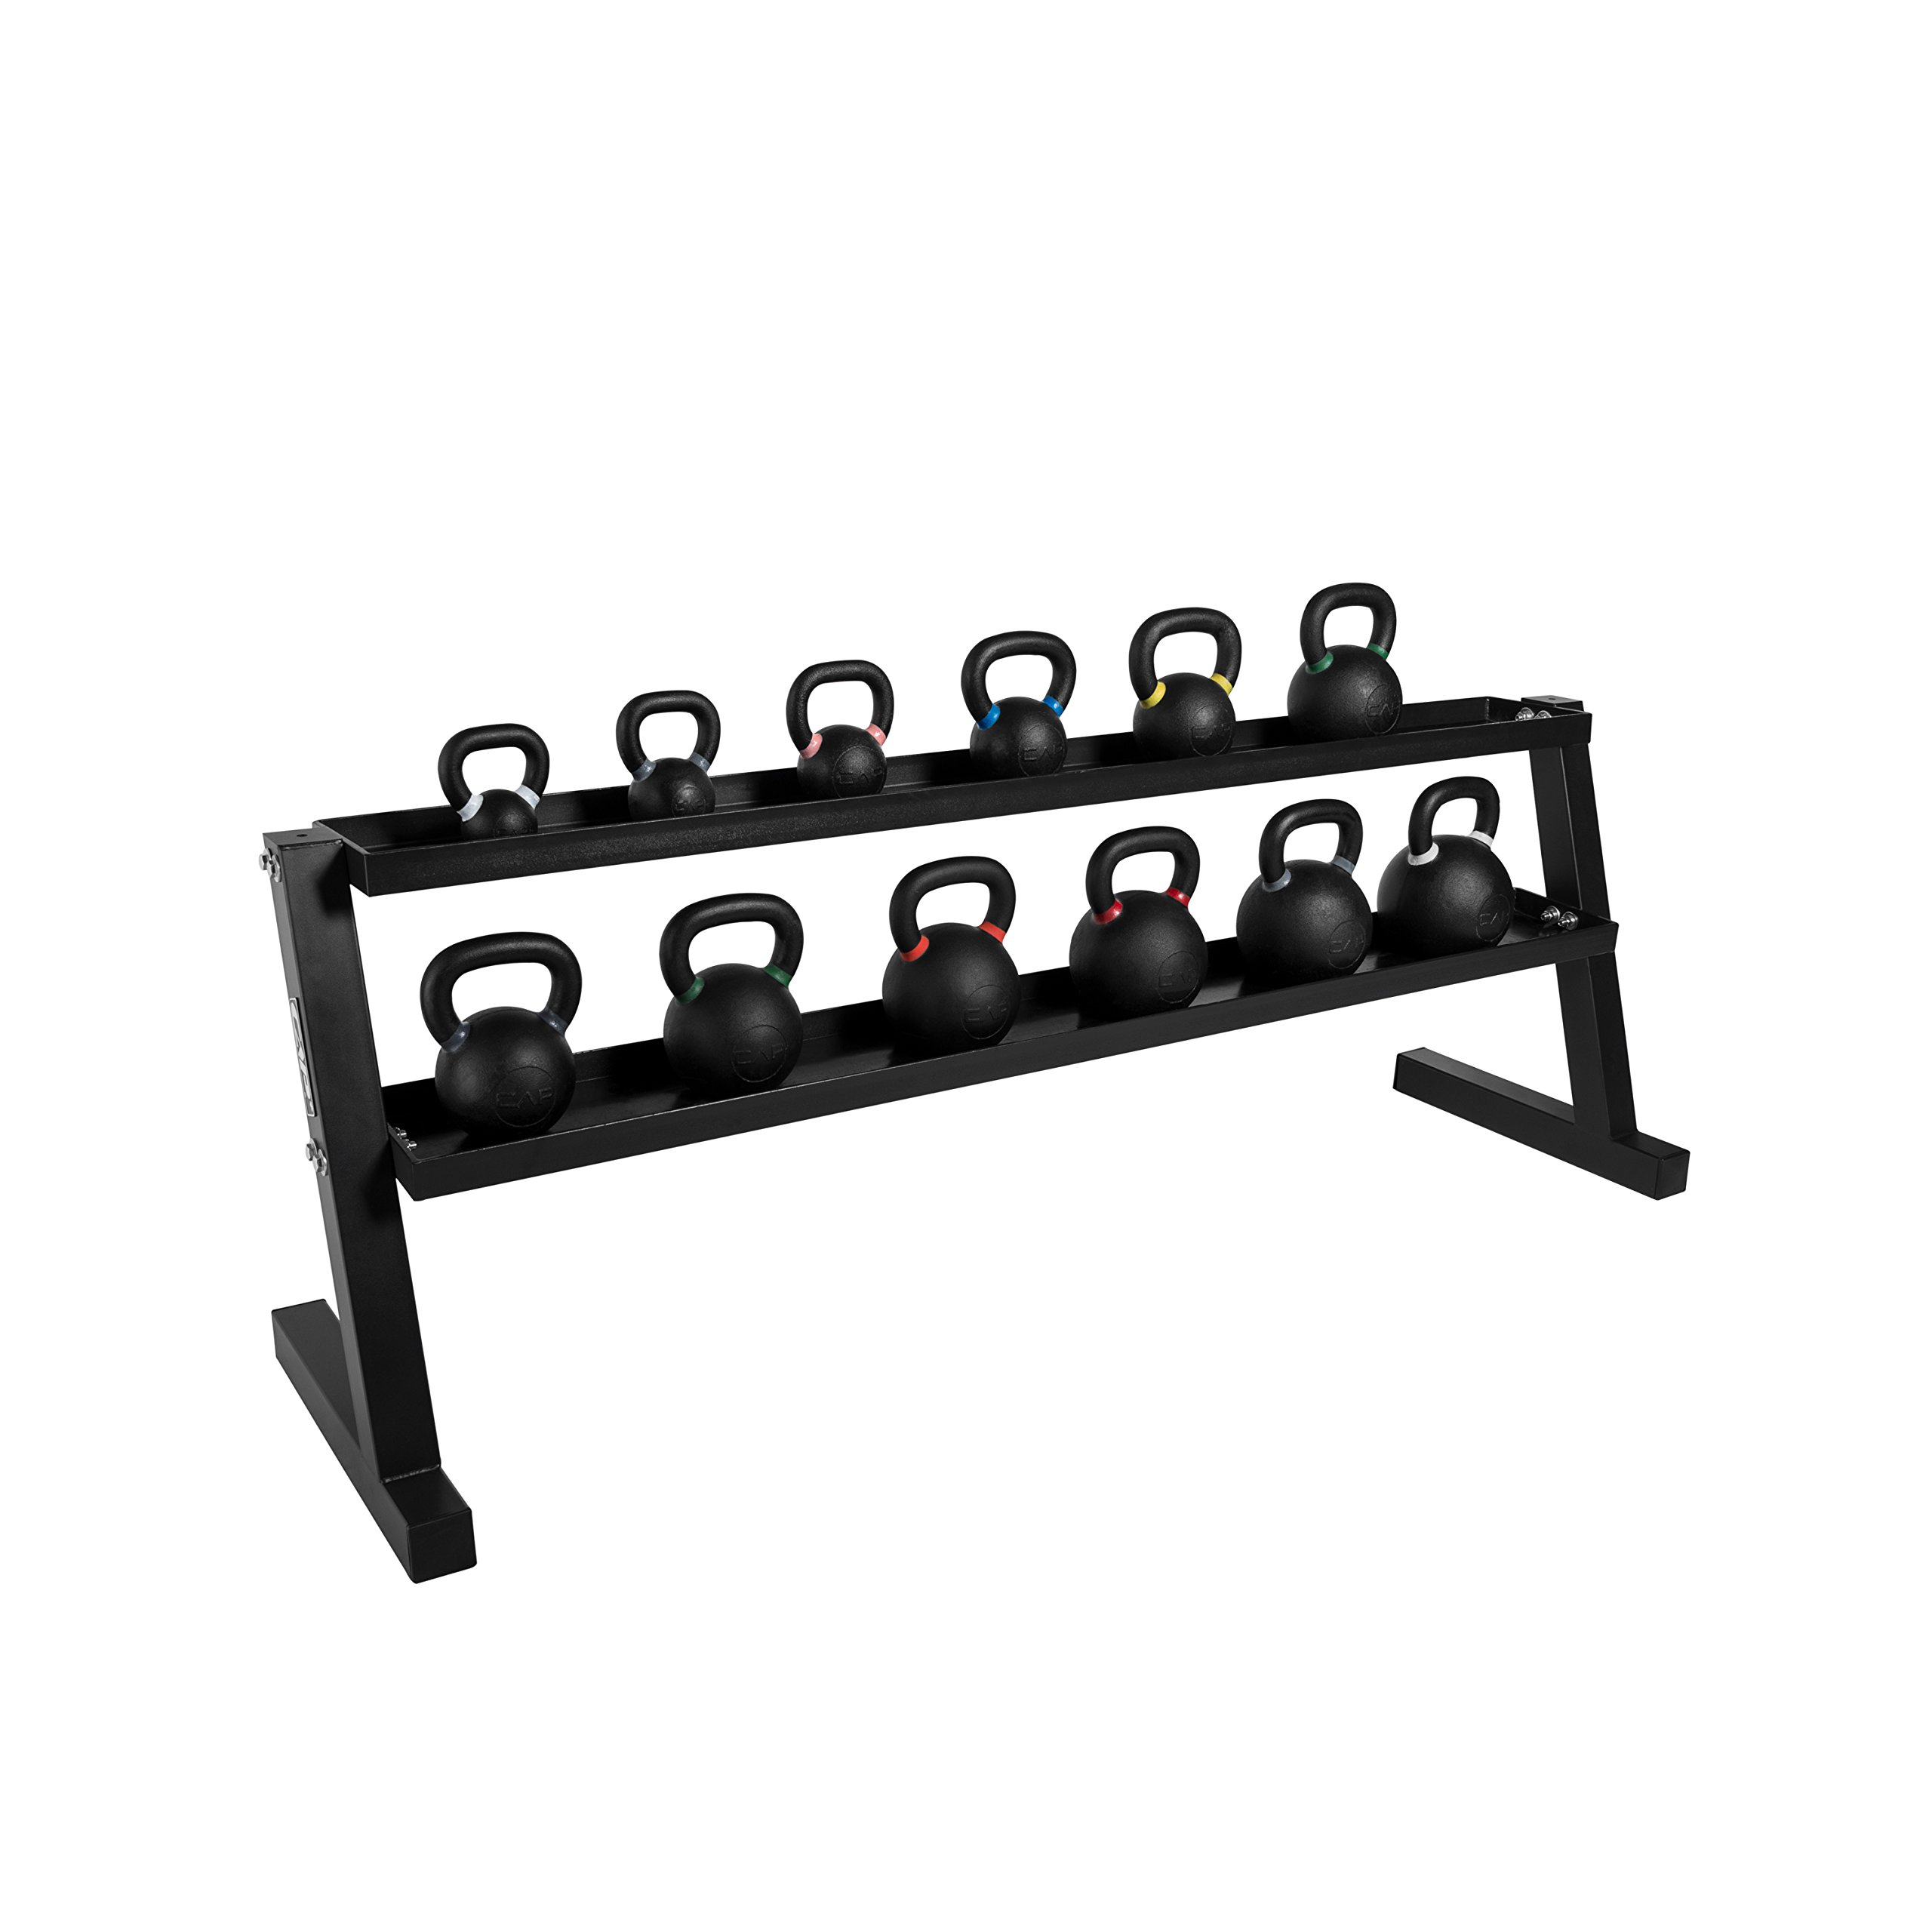 CAP Barbell Kettlebell Set with Storage Rack (498 Lb Competition Kettlebell Set with 86'' Storage Rack)